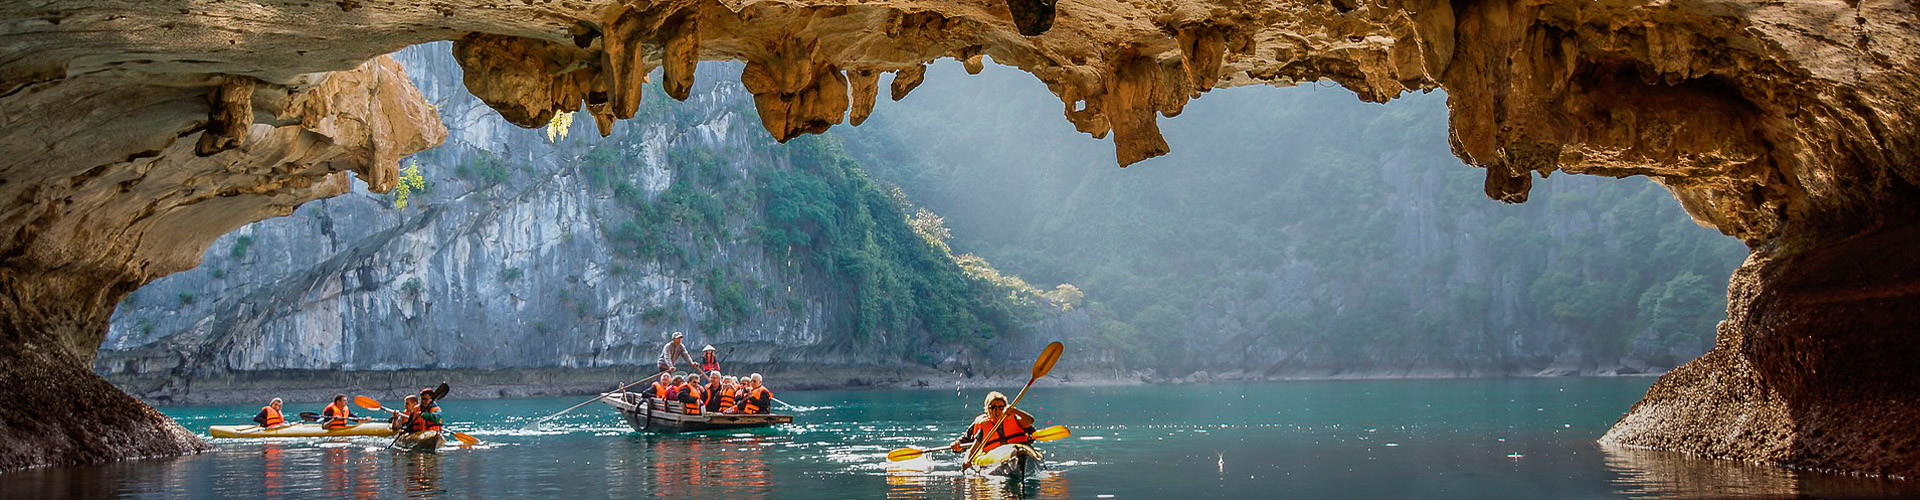 Le blog de So Vietnam Travel